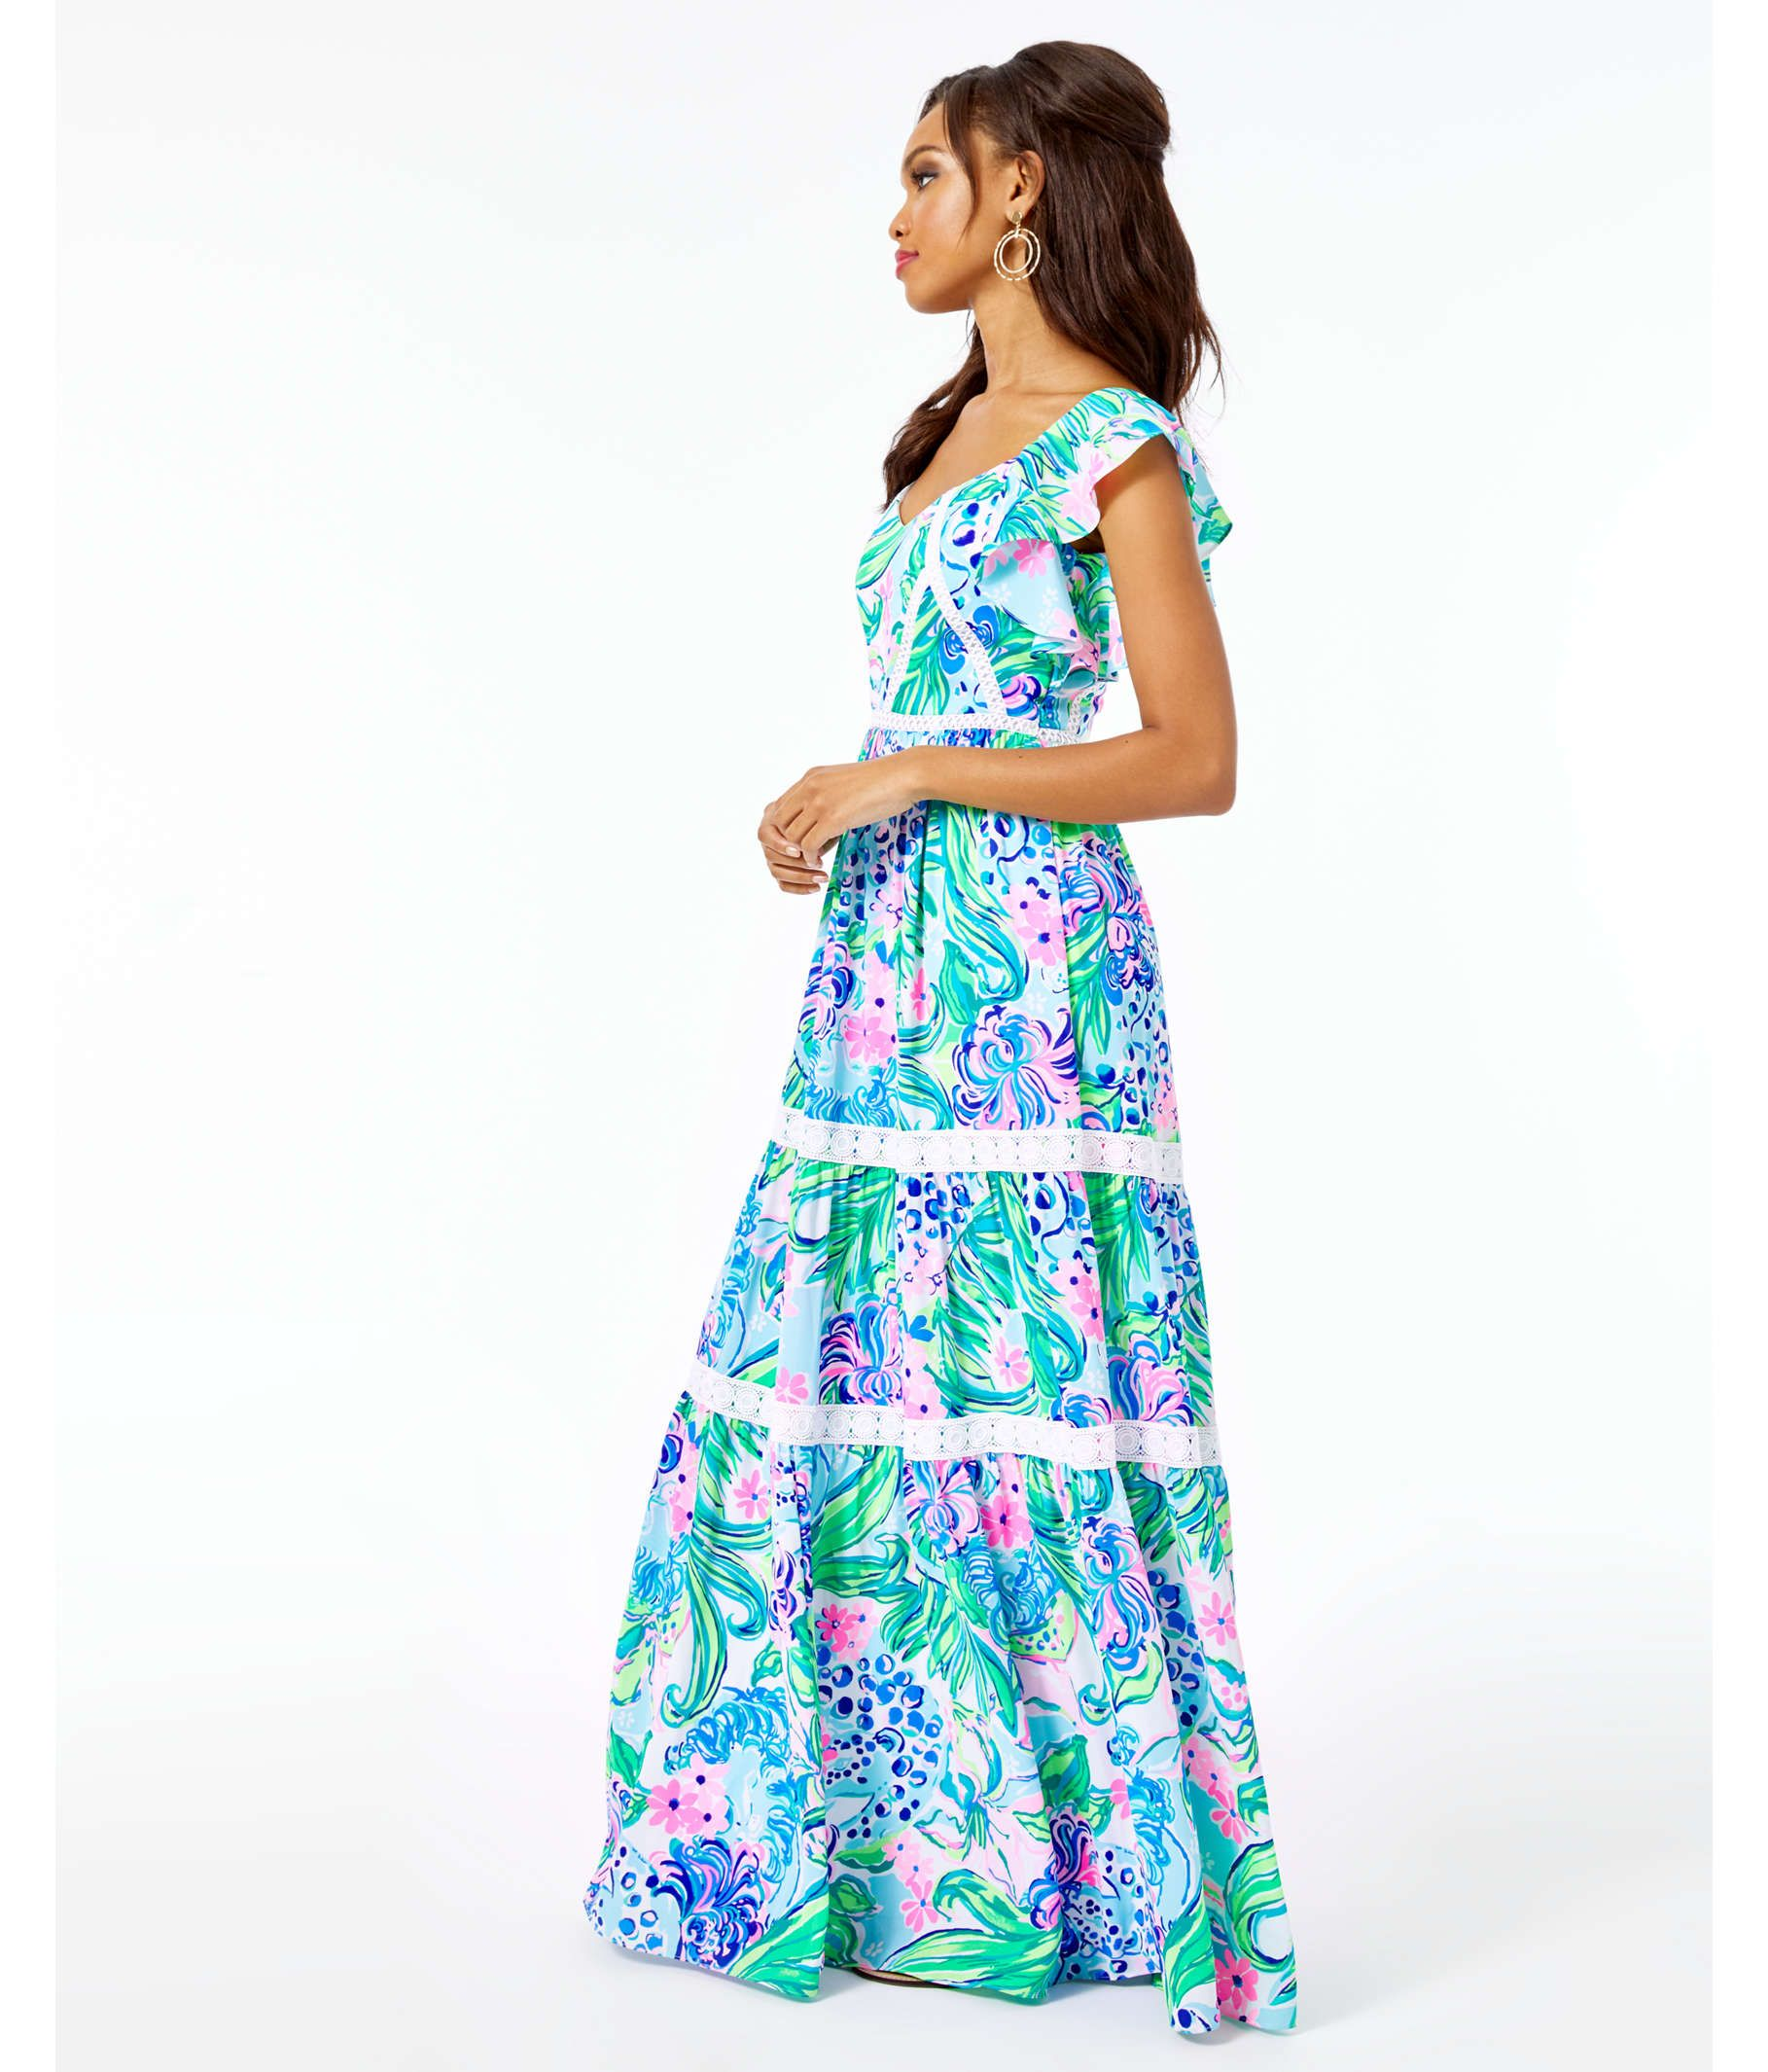 30+ Lilly pulitzer maxi dress ideas in 2021